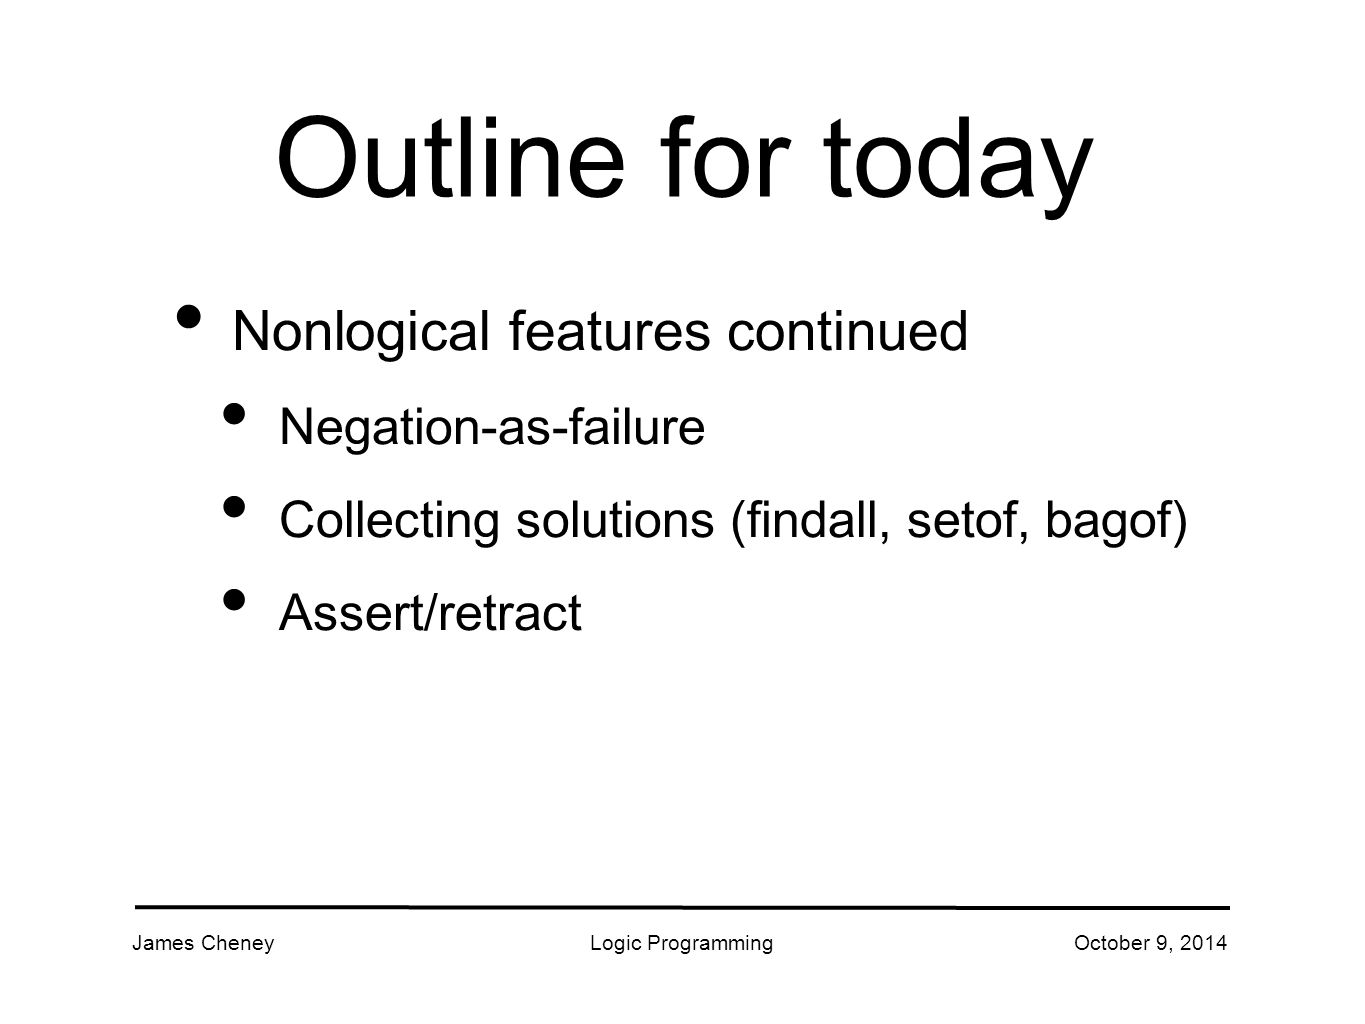 James CheneyLogic ProgrammingOctober 9, 2014 Outline for today Nonlogical features continued Negation-as-failure Collecting solutions (findall, setof, bagof) Assert/retract